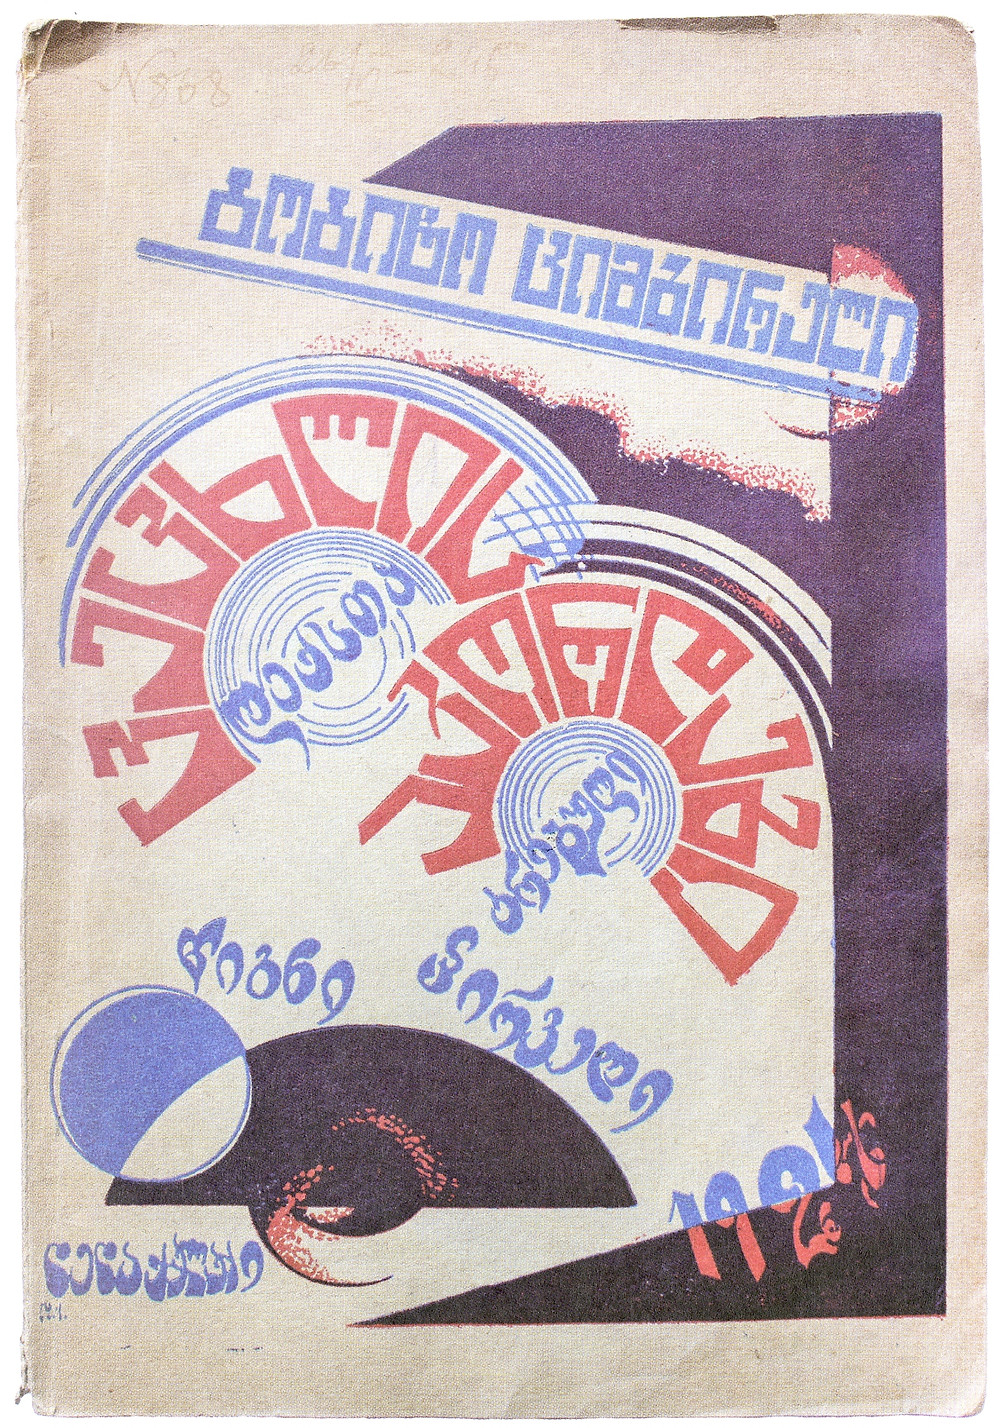 Cover illustration by David Kutateladze, 1924.